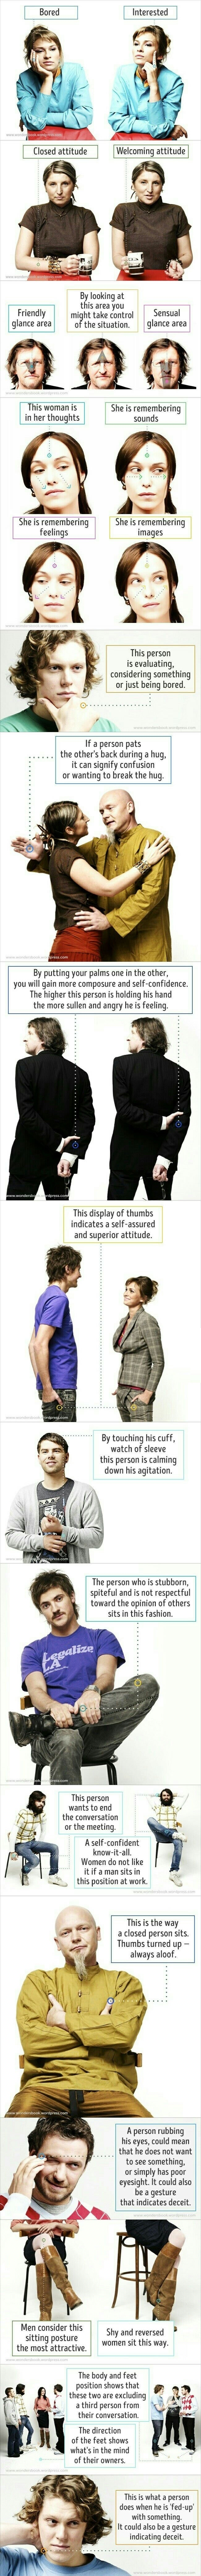 Body language 101